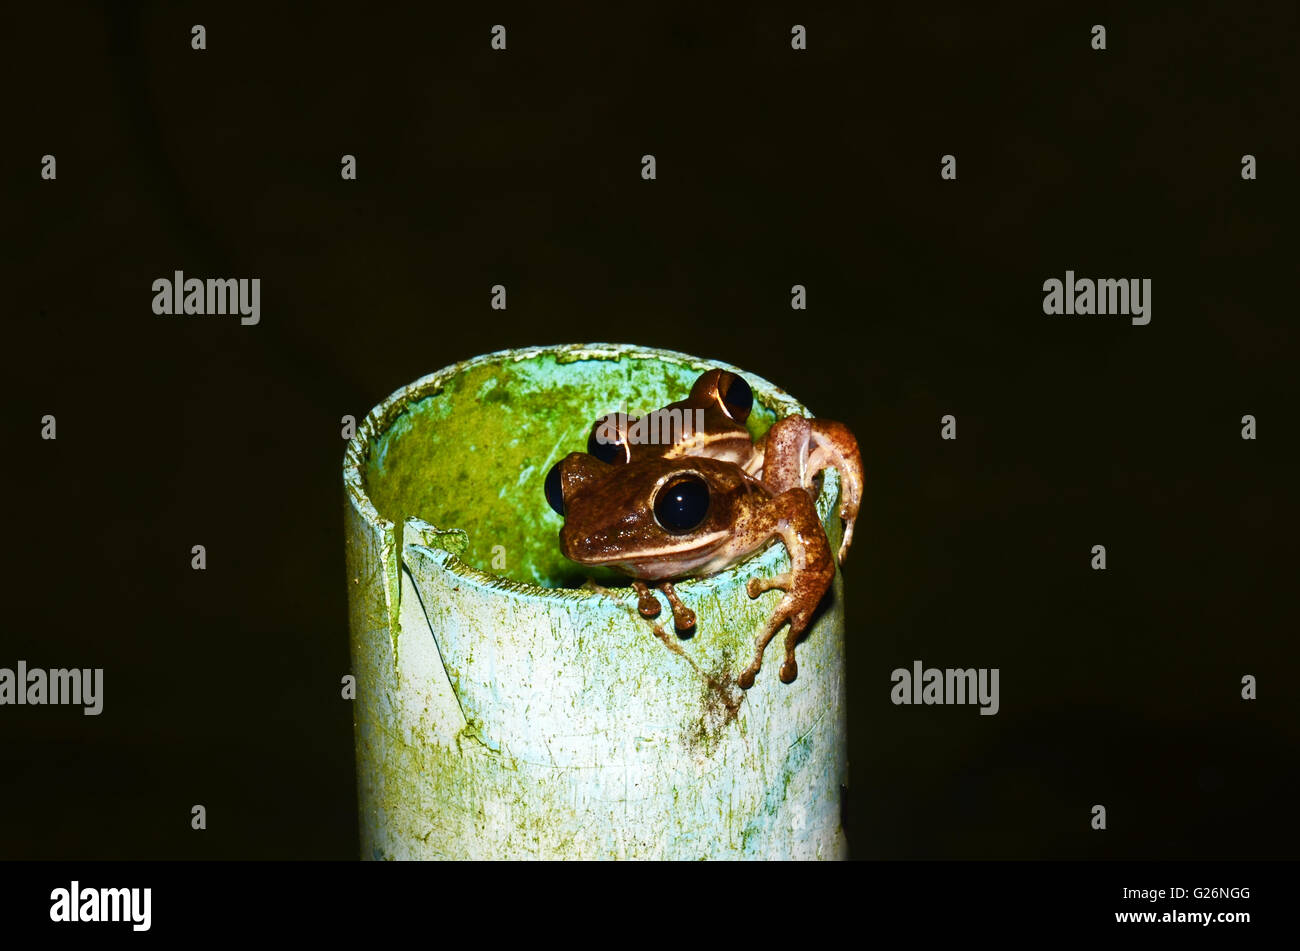 Two tree frogs emerge from a drainage tube, Khao Sok, Thailand - Stock Image